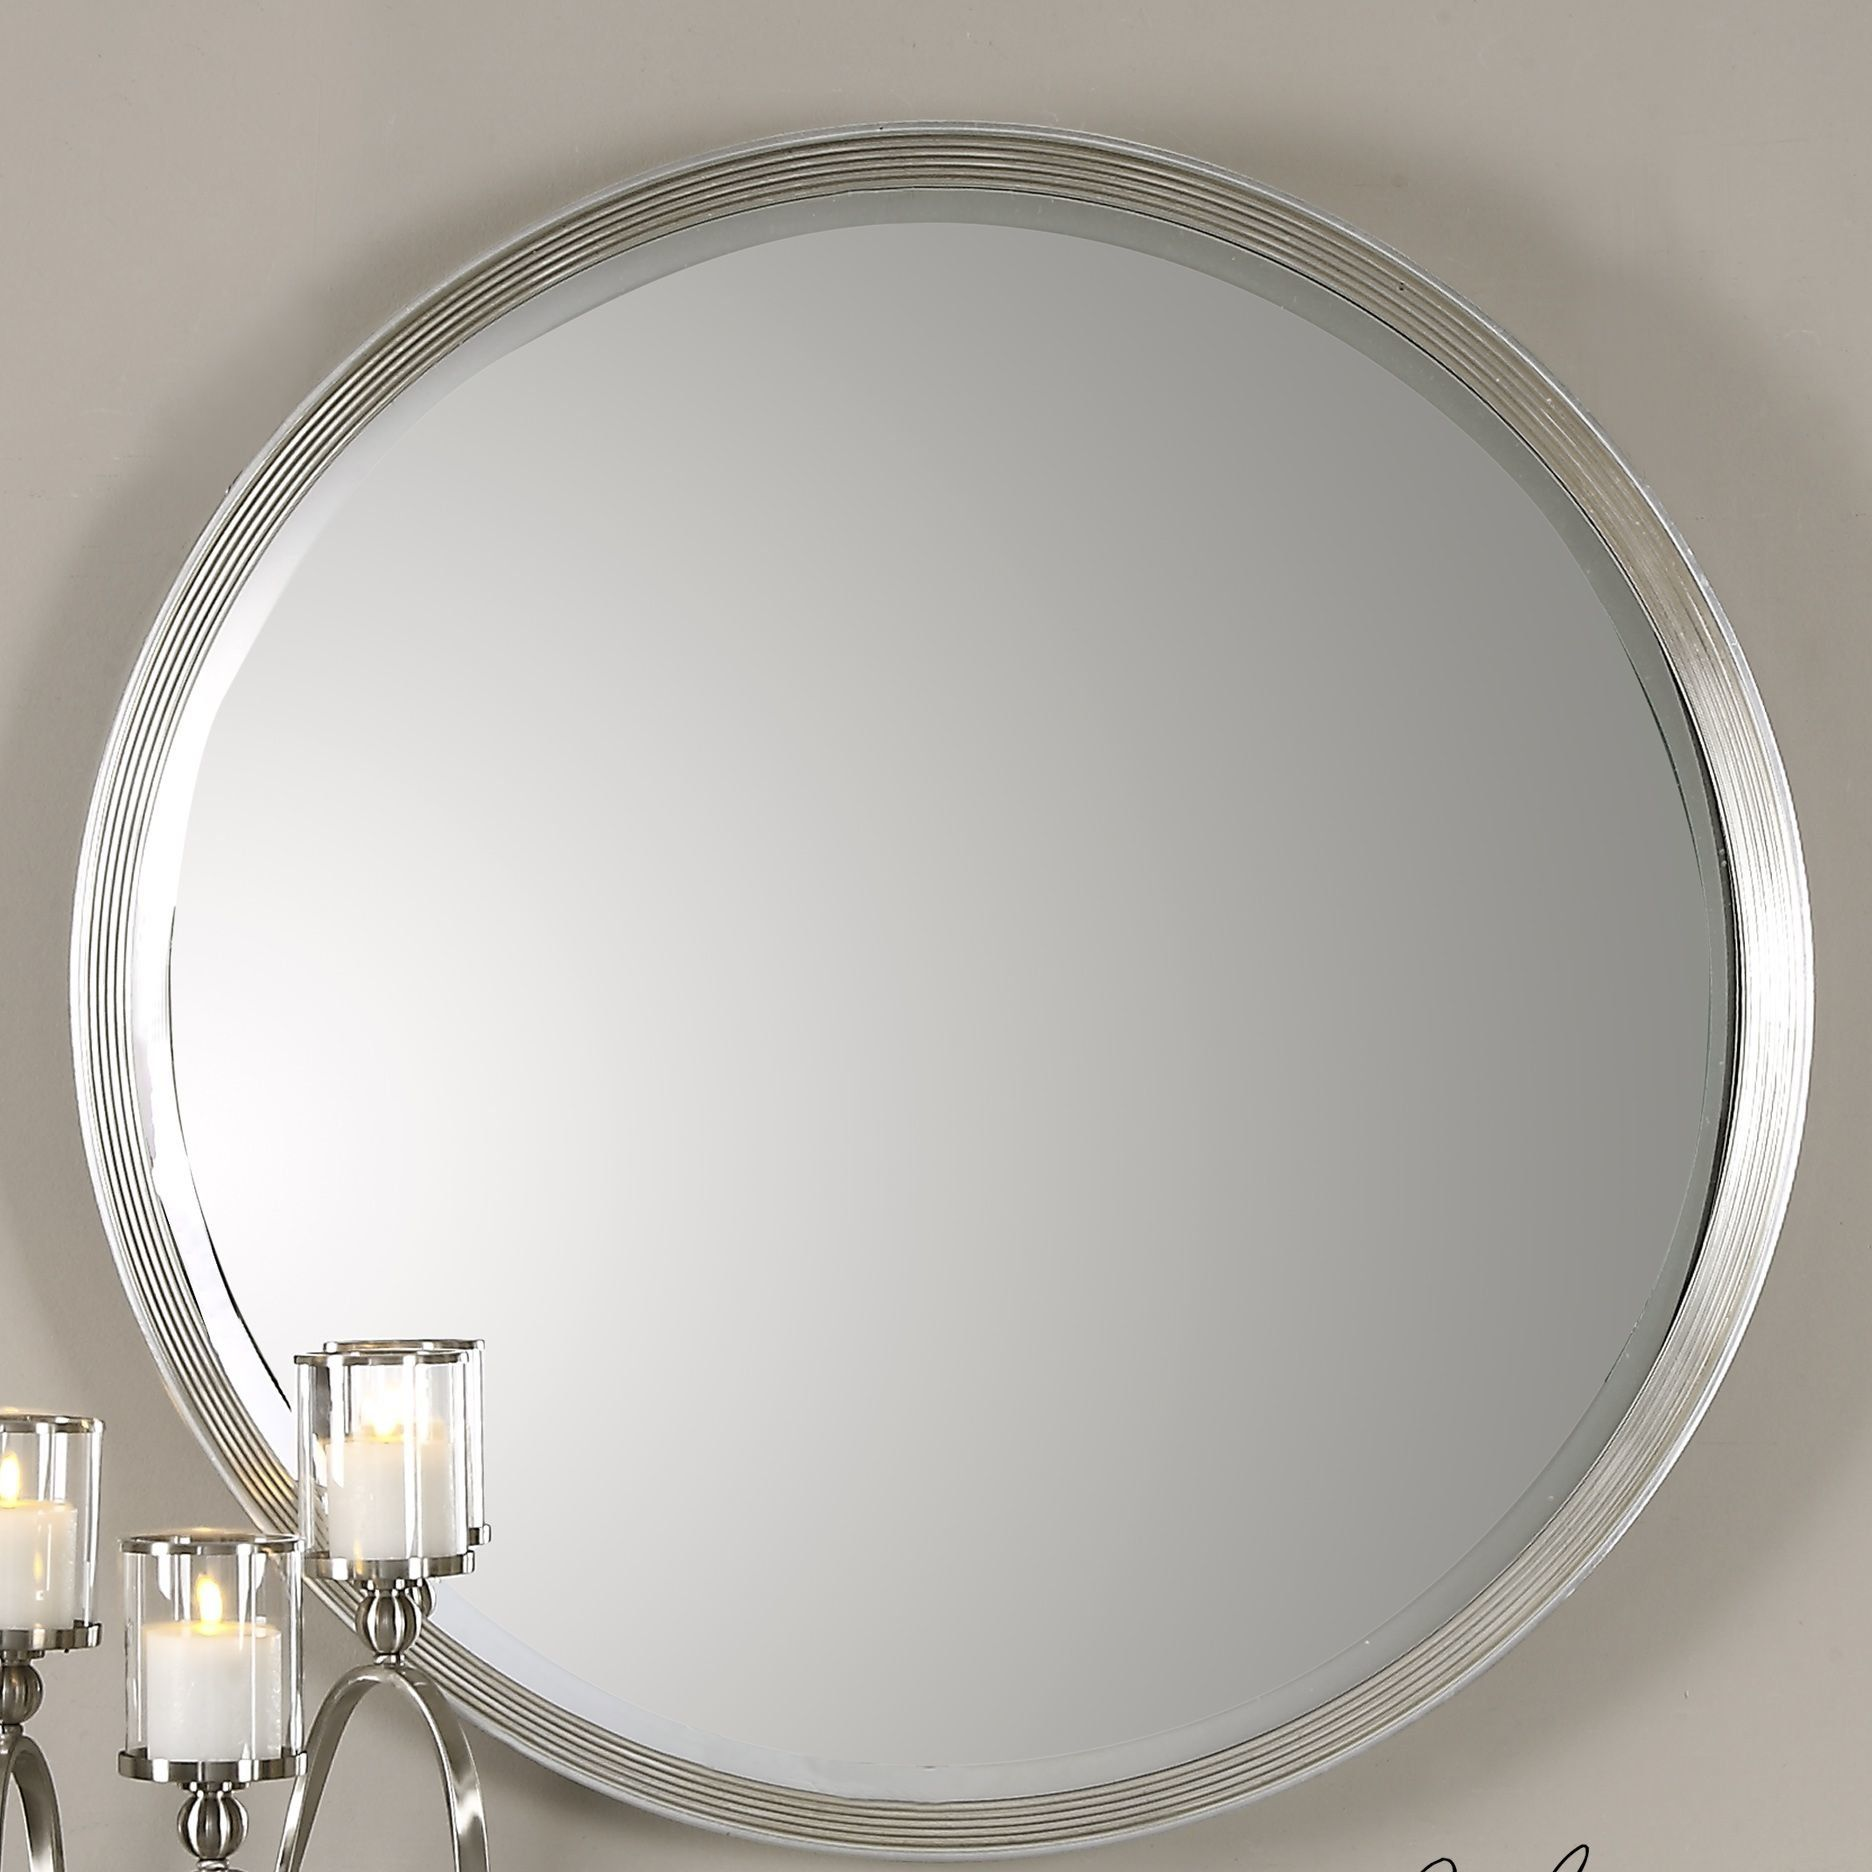 Round Silver Beveled Accent Wall Mirror Mirror Gallery Wall